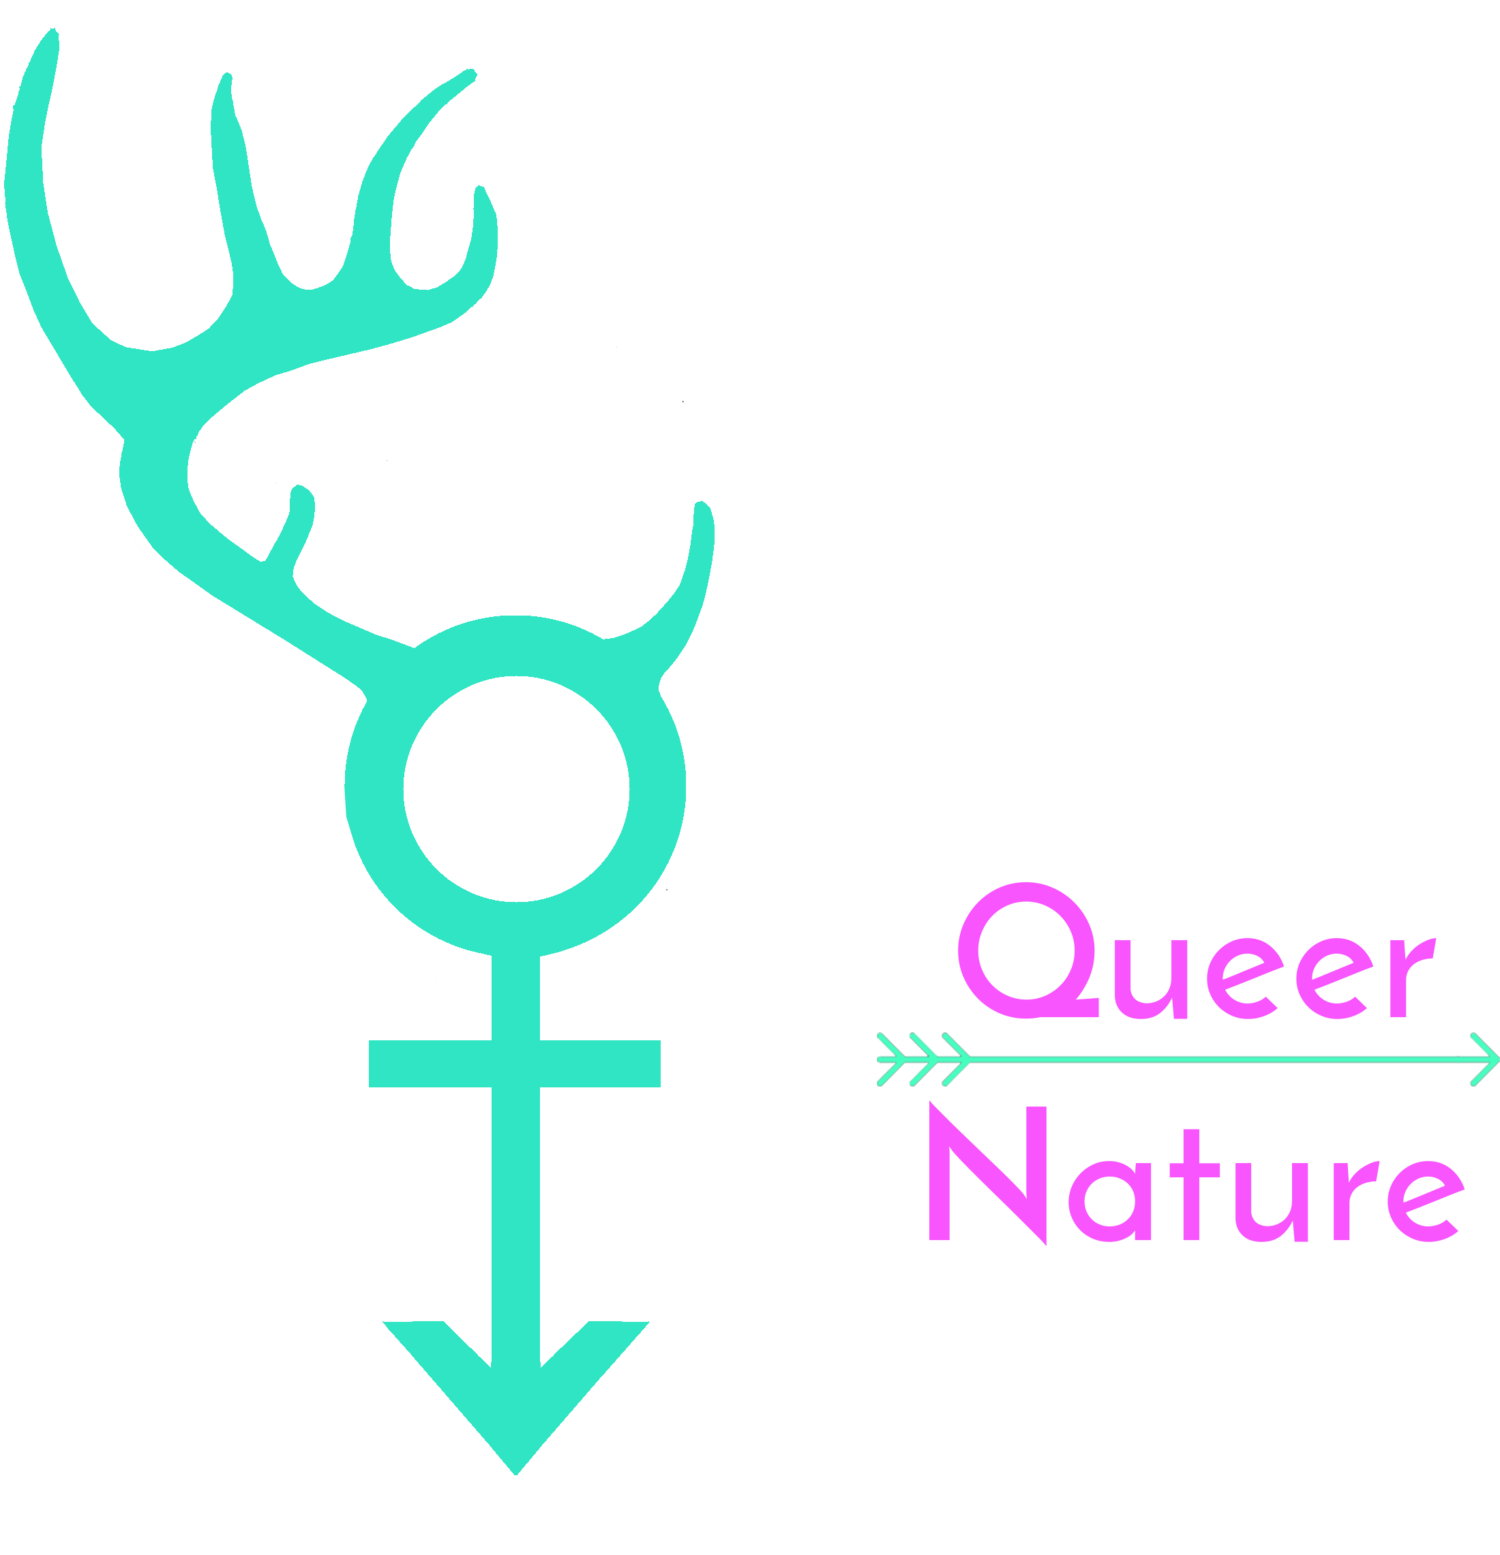 Wilderness project skillshares nature. Outdoor drawing queer graphic royalty free